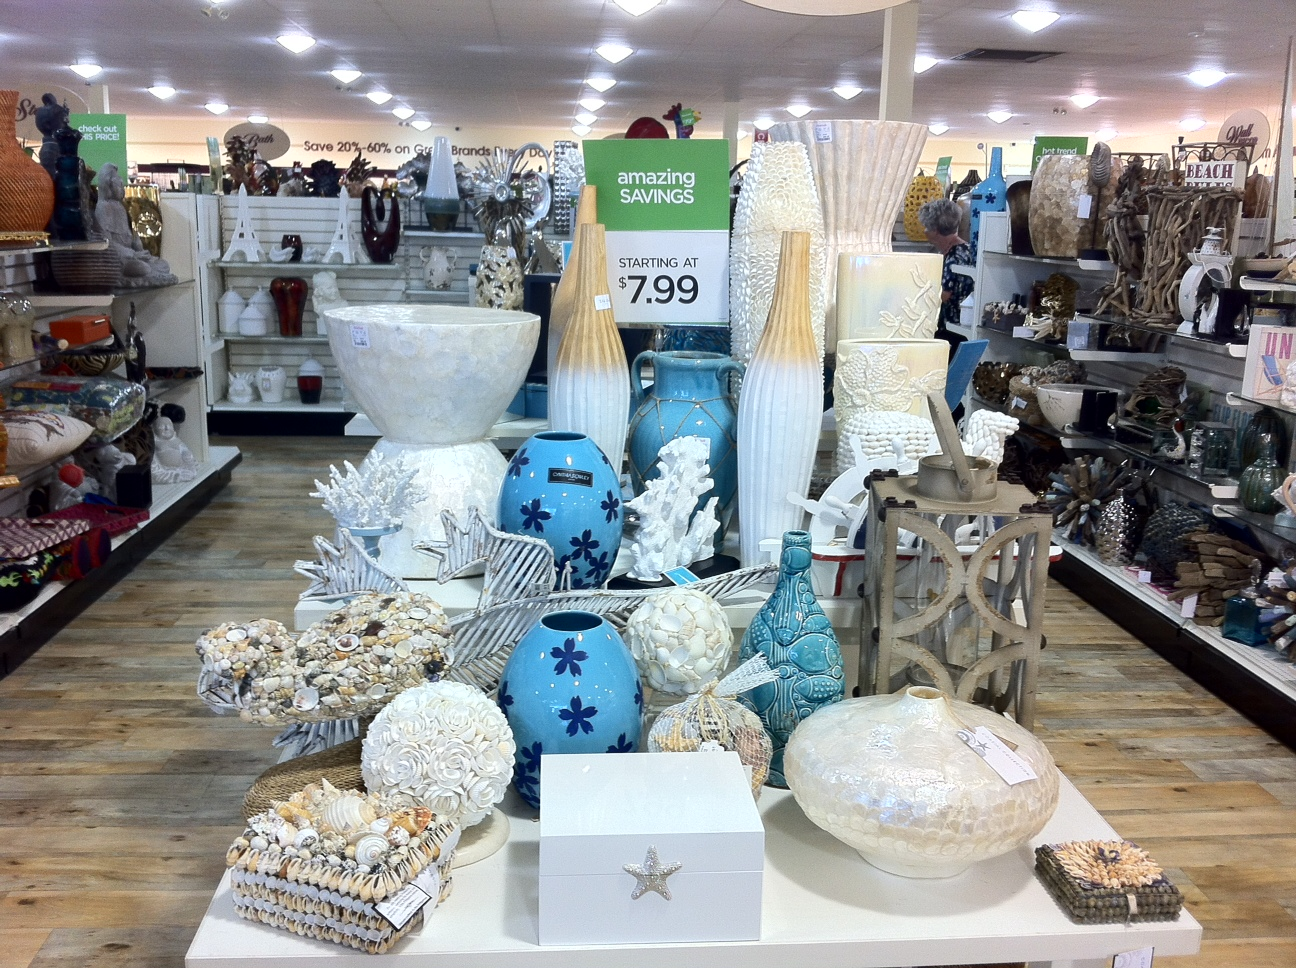 Home goods decorations 28 images tjmaxx homegoods for Bathroom decor home goods